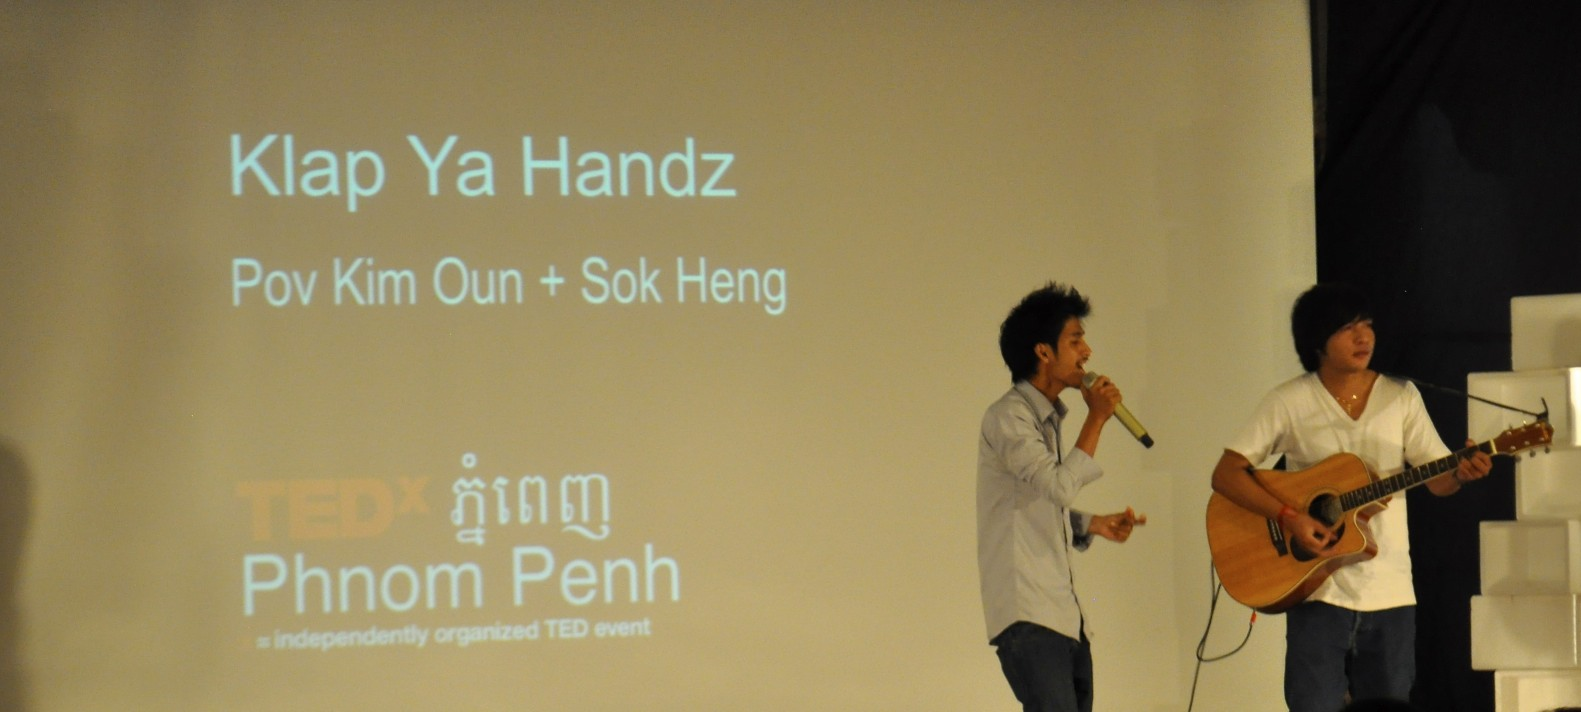 klap ya handz for TEDx in Phnom Penh, By: Gabrielle Yetter